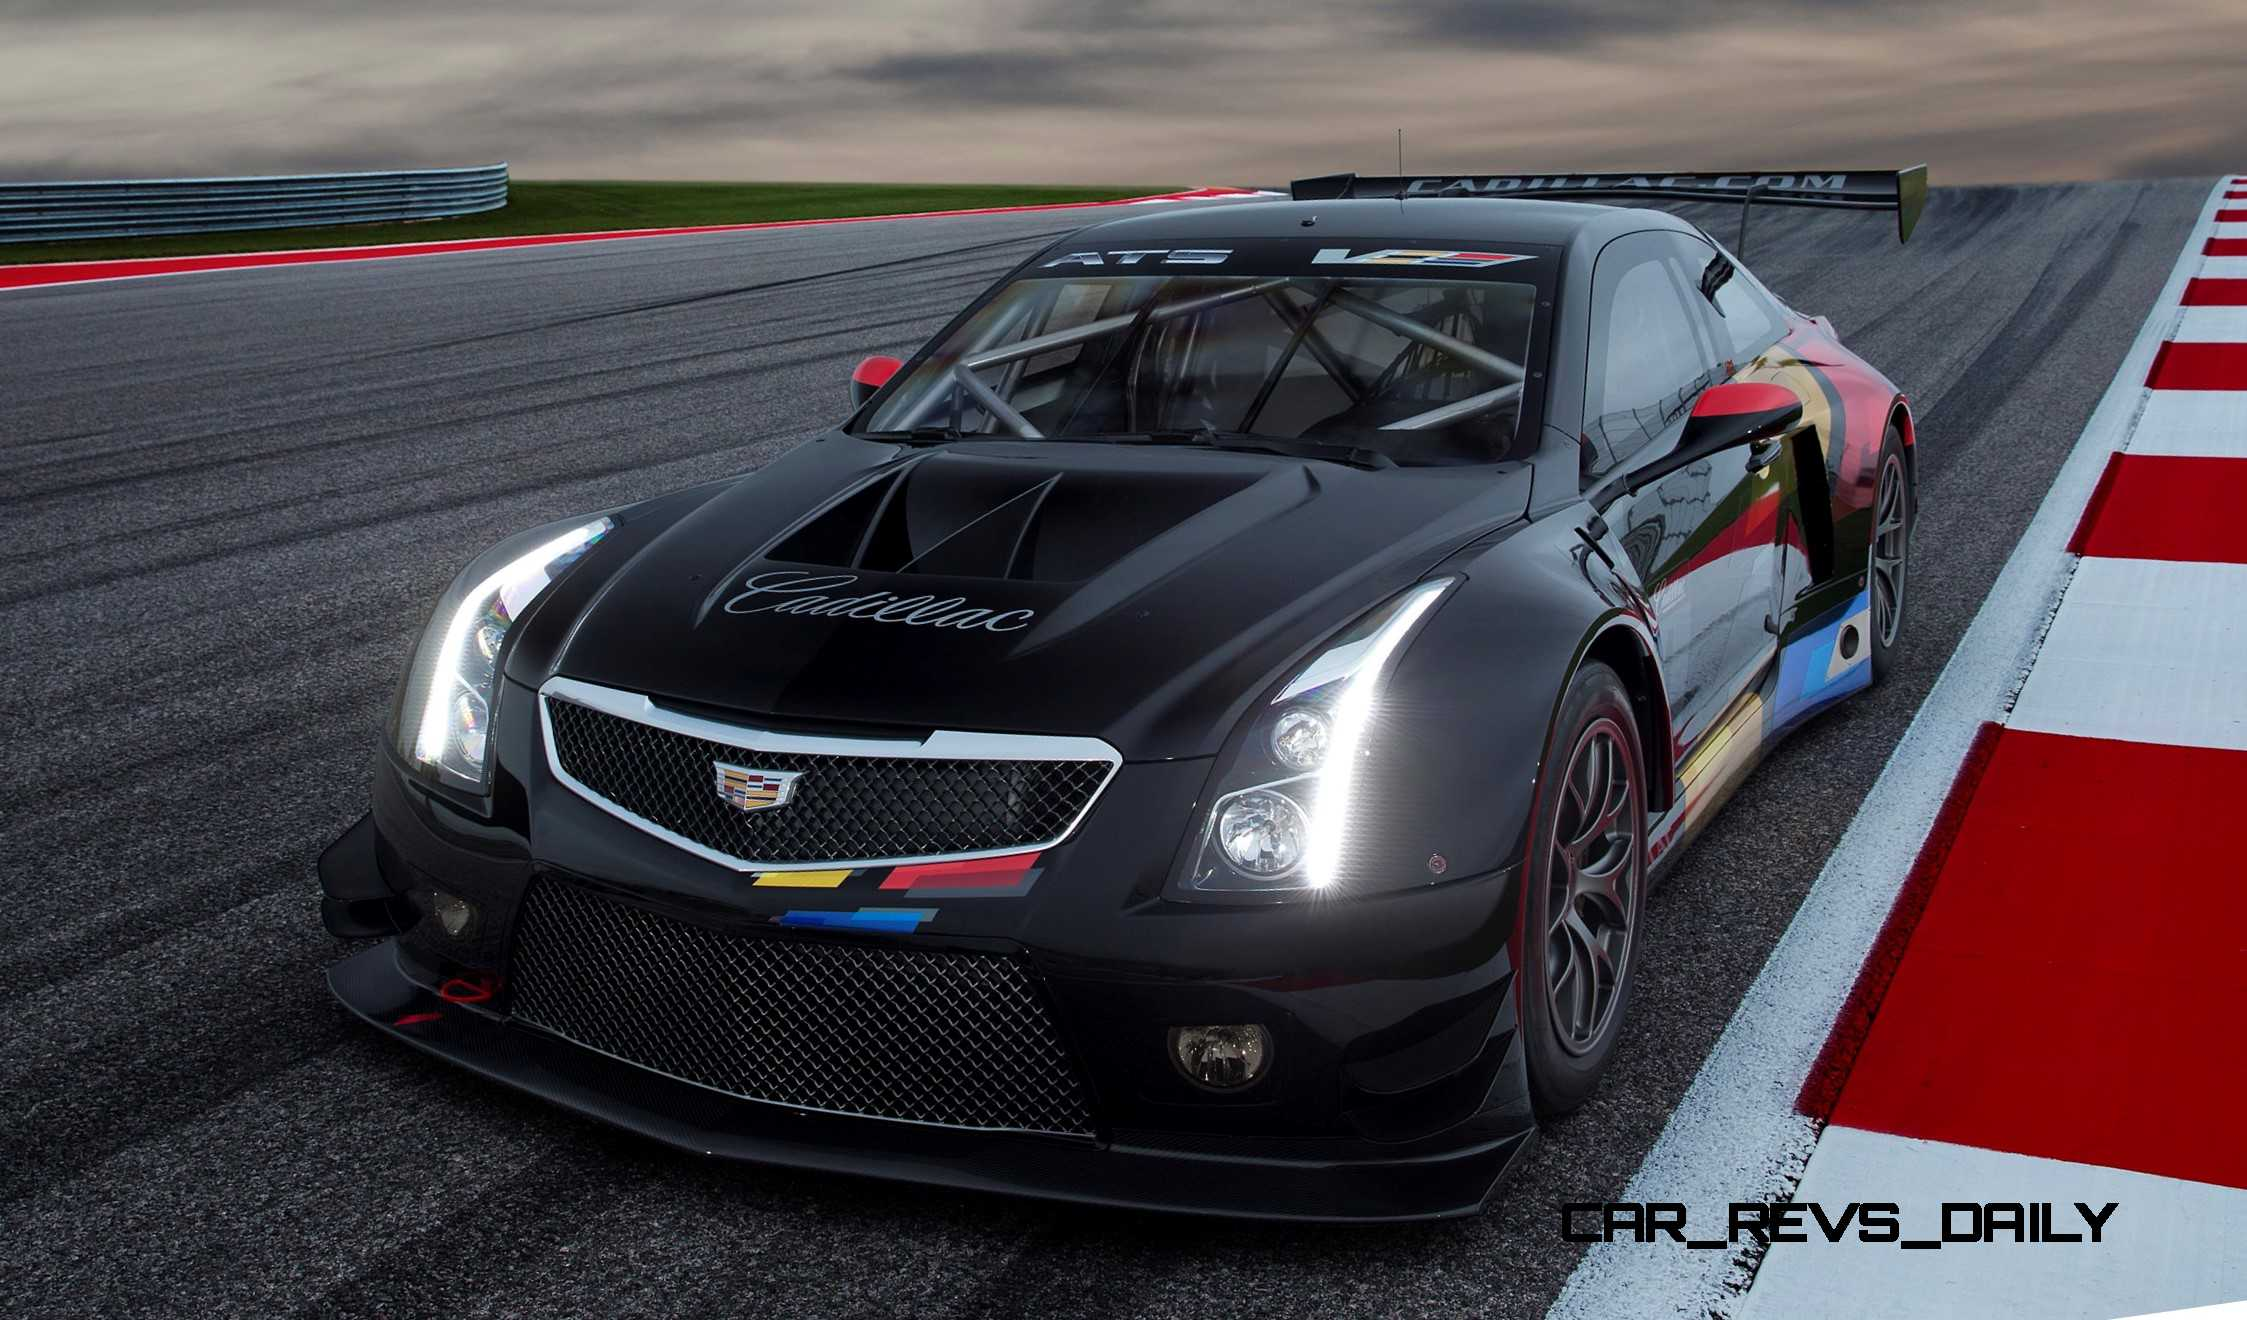 2015 Cadillac ATS-V.R Is FIA GT3 Racecar Writ Large - In Cursive!